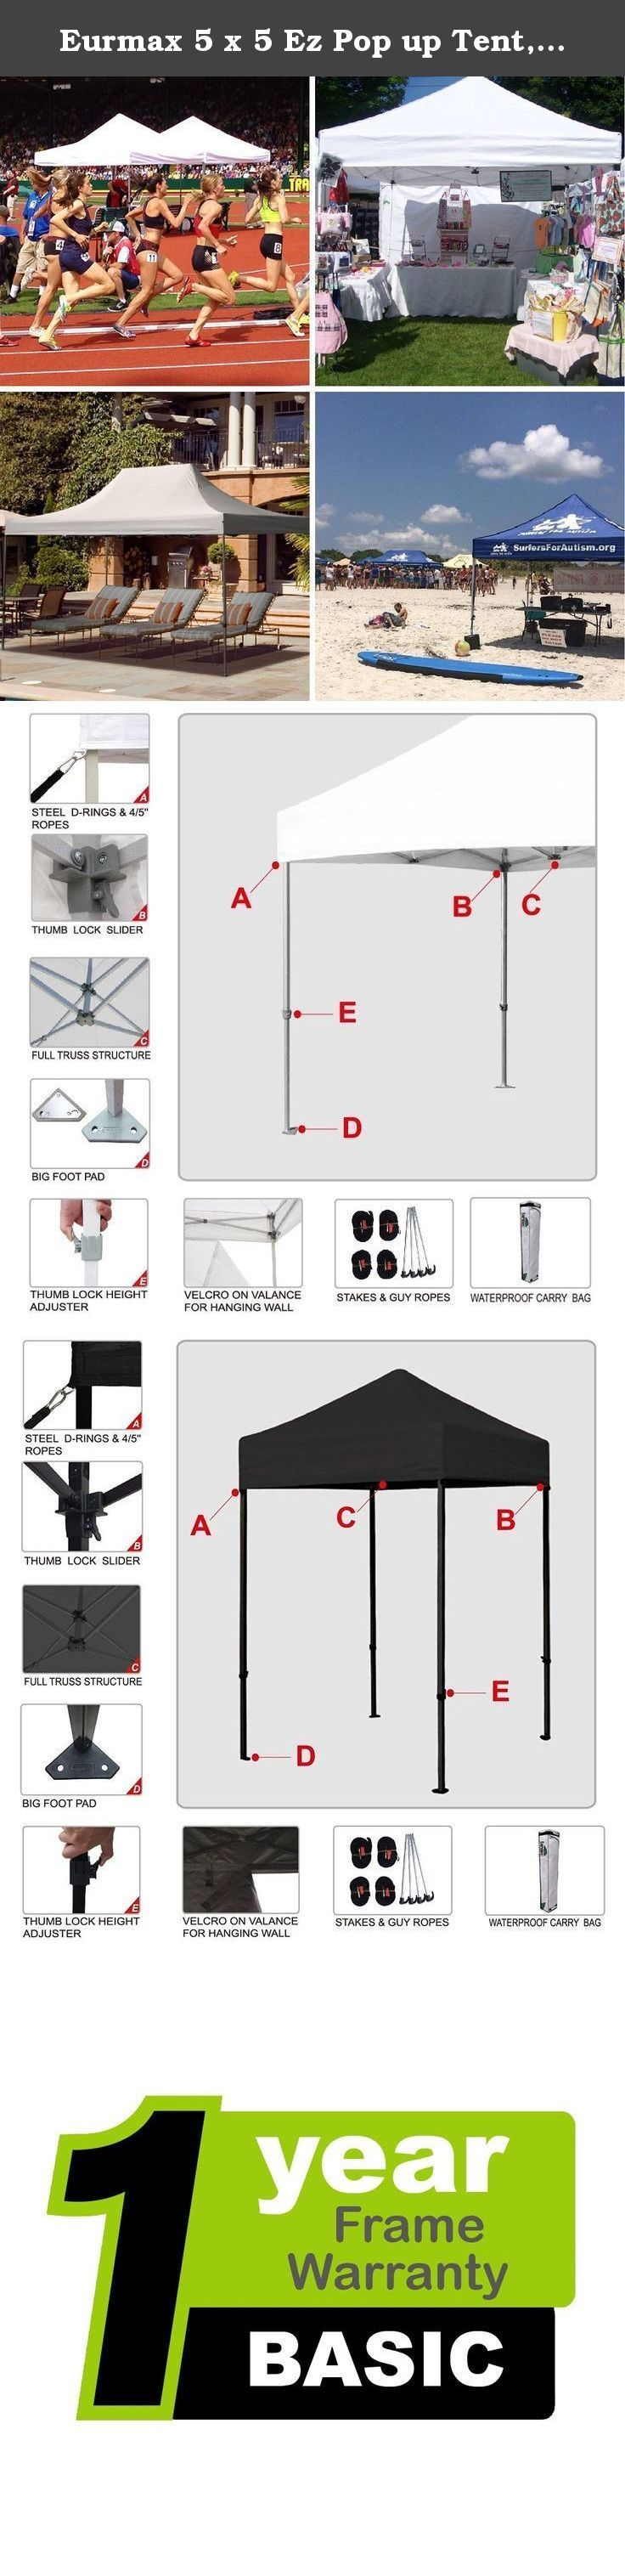 Eurmax 5 x 5 Ez Pop up Tent, Outdoor Patio Instant Canopy, with Deluxe Carry bag (Black). Whether you're camping, dining in the backyard, or hosting a wedding reception, the Strong Eurmax easy pop up tents makes an ideal companion!.